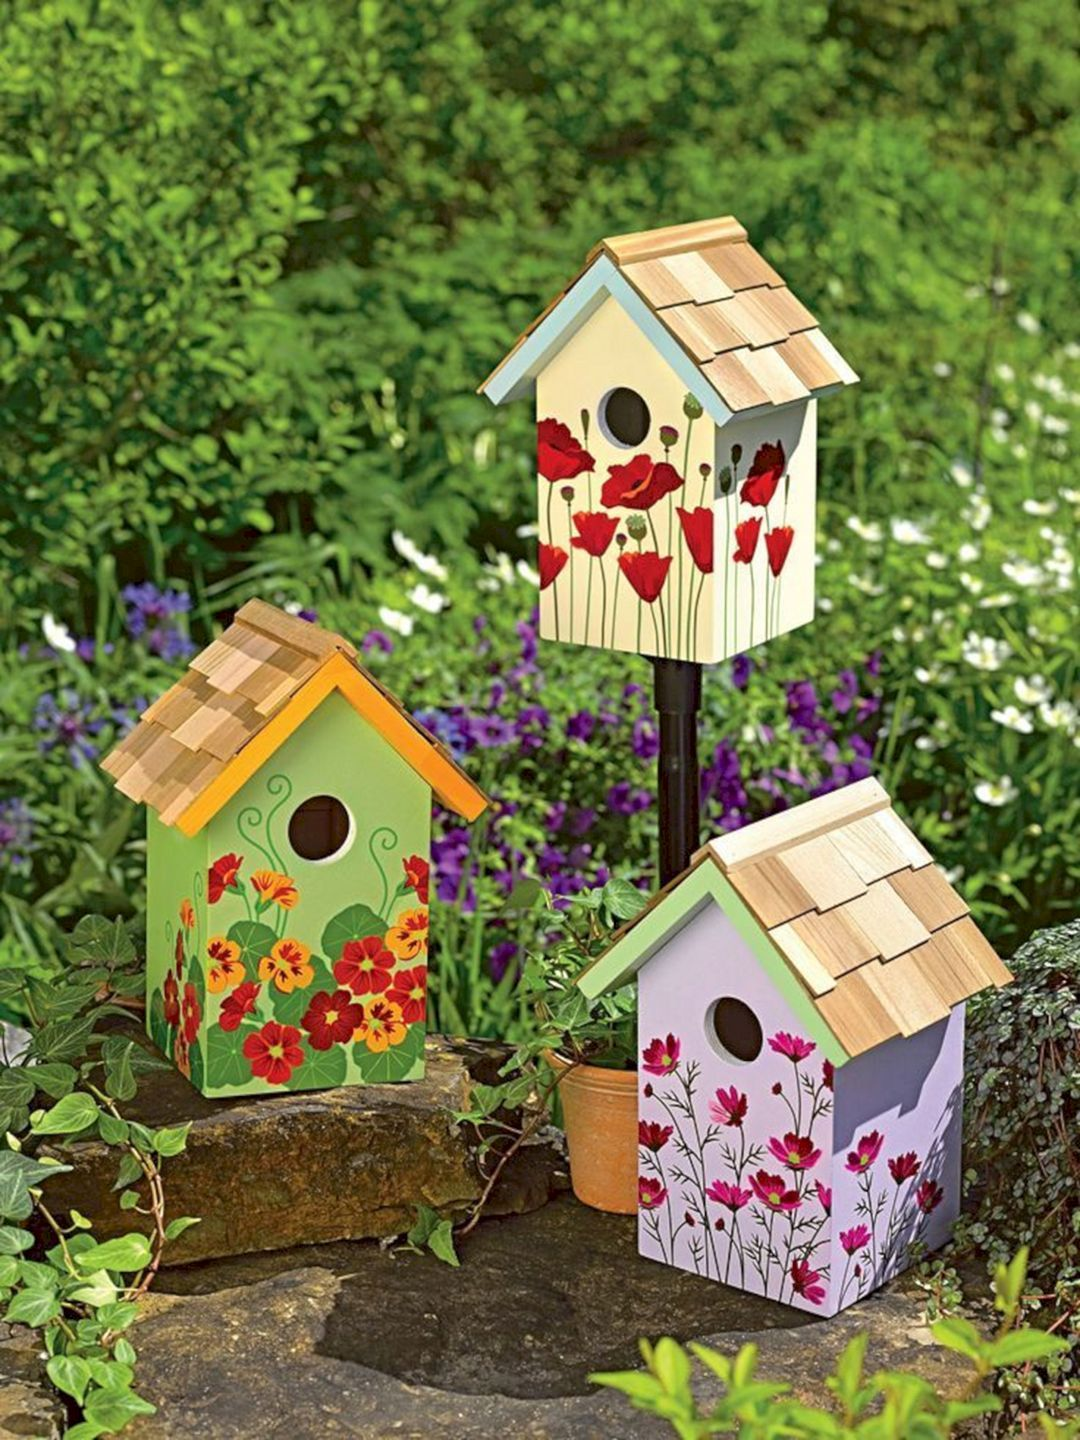 65+ Cool Birdhouse Design Ideas To Make Birds Easily to Nest in Your Garden #gardendesign